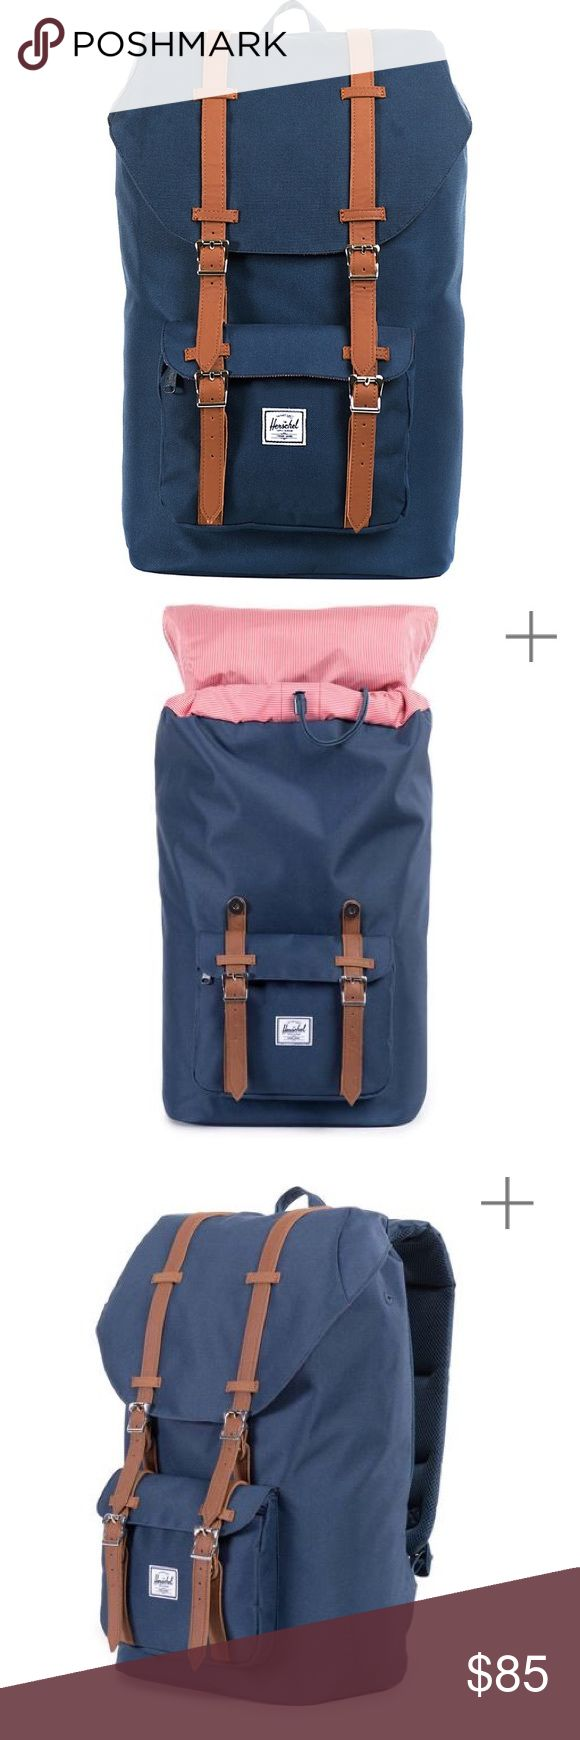 Herschel | navy blue Little America backpack Navy blue 'Little America' backpack with tan straps. Padded straps make it super comfortable. Perfect for travel, hiking, or commuting! It's a really versatile bag and has SO much space including a padded laptop sleeve which would keep it really  secure especially with its durable exterior. Only used once on a trip. Like new condition! Herschel Supply Company Bags Backpacks